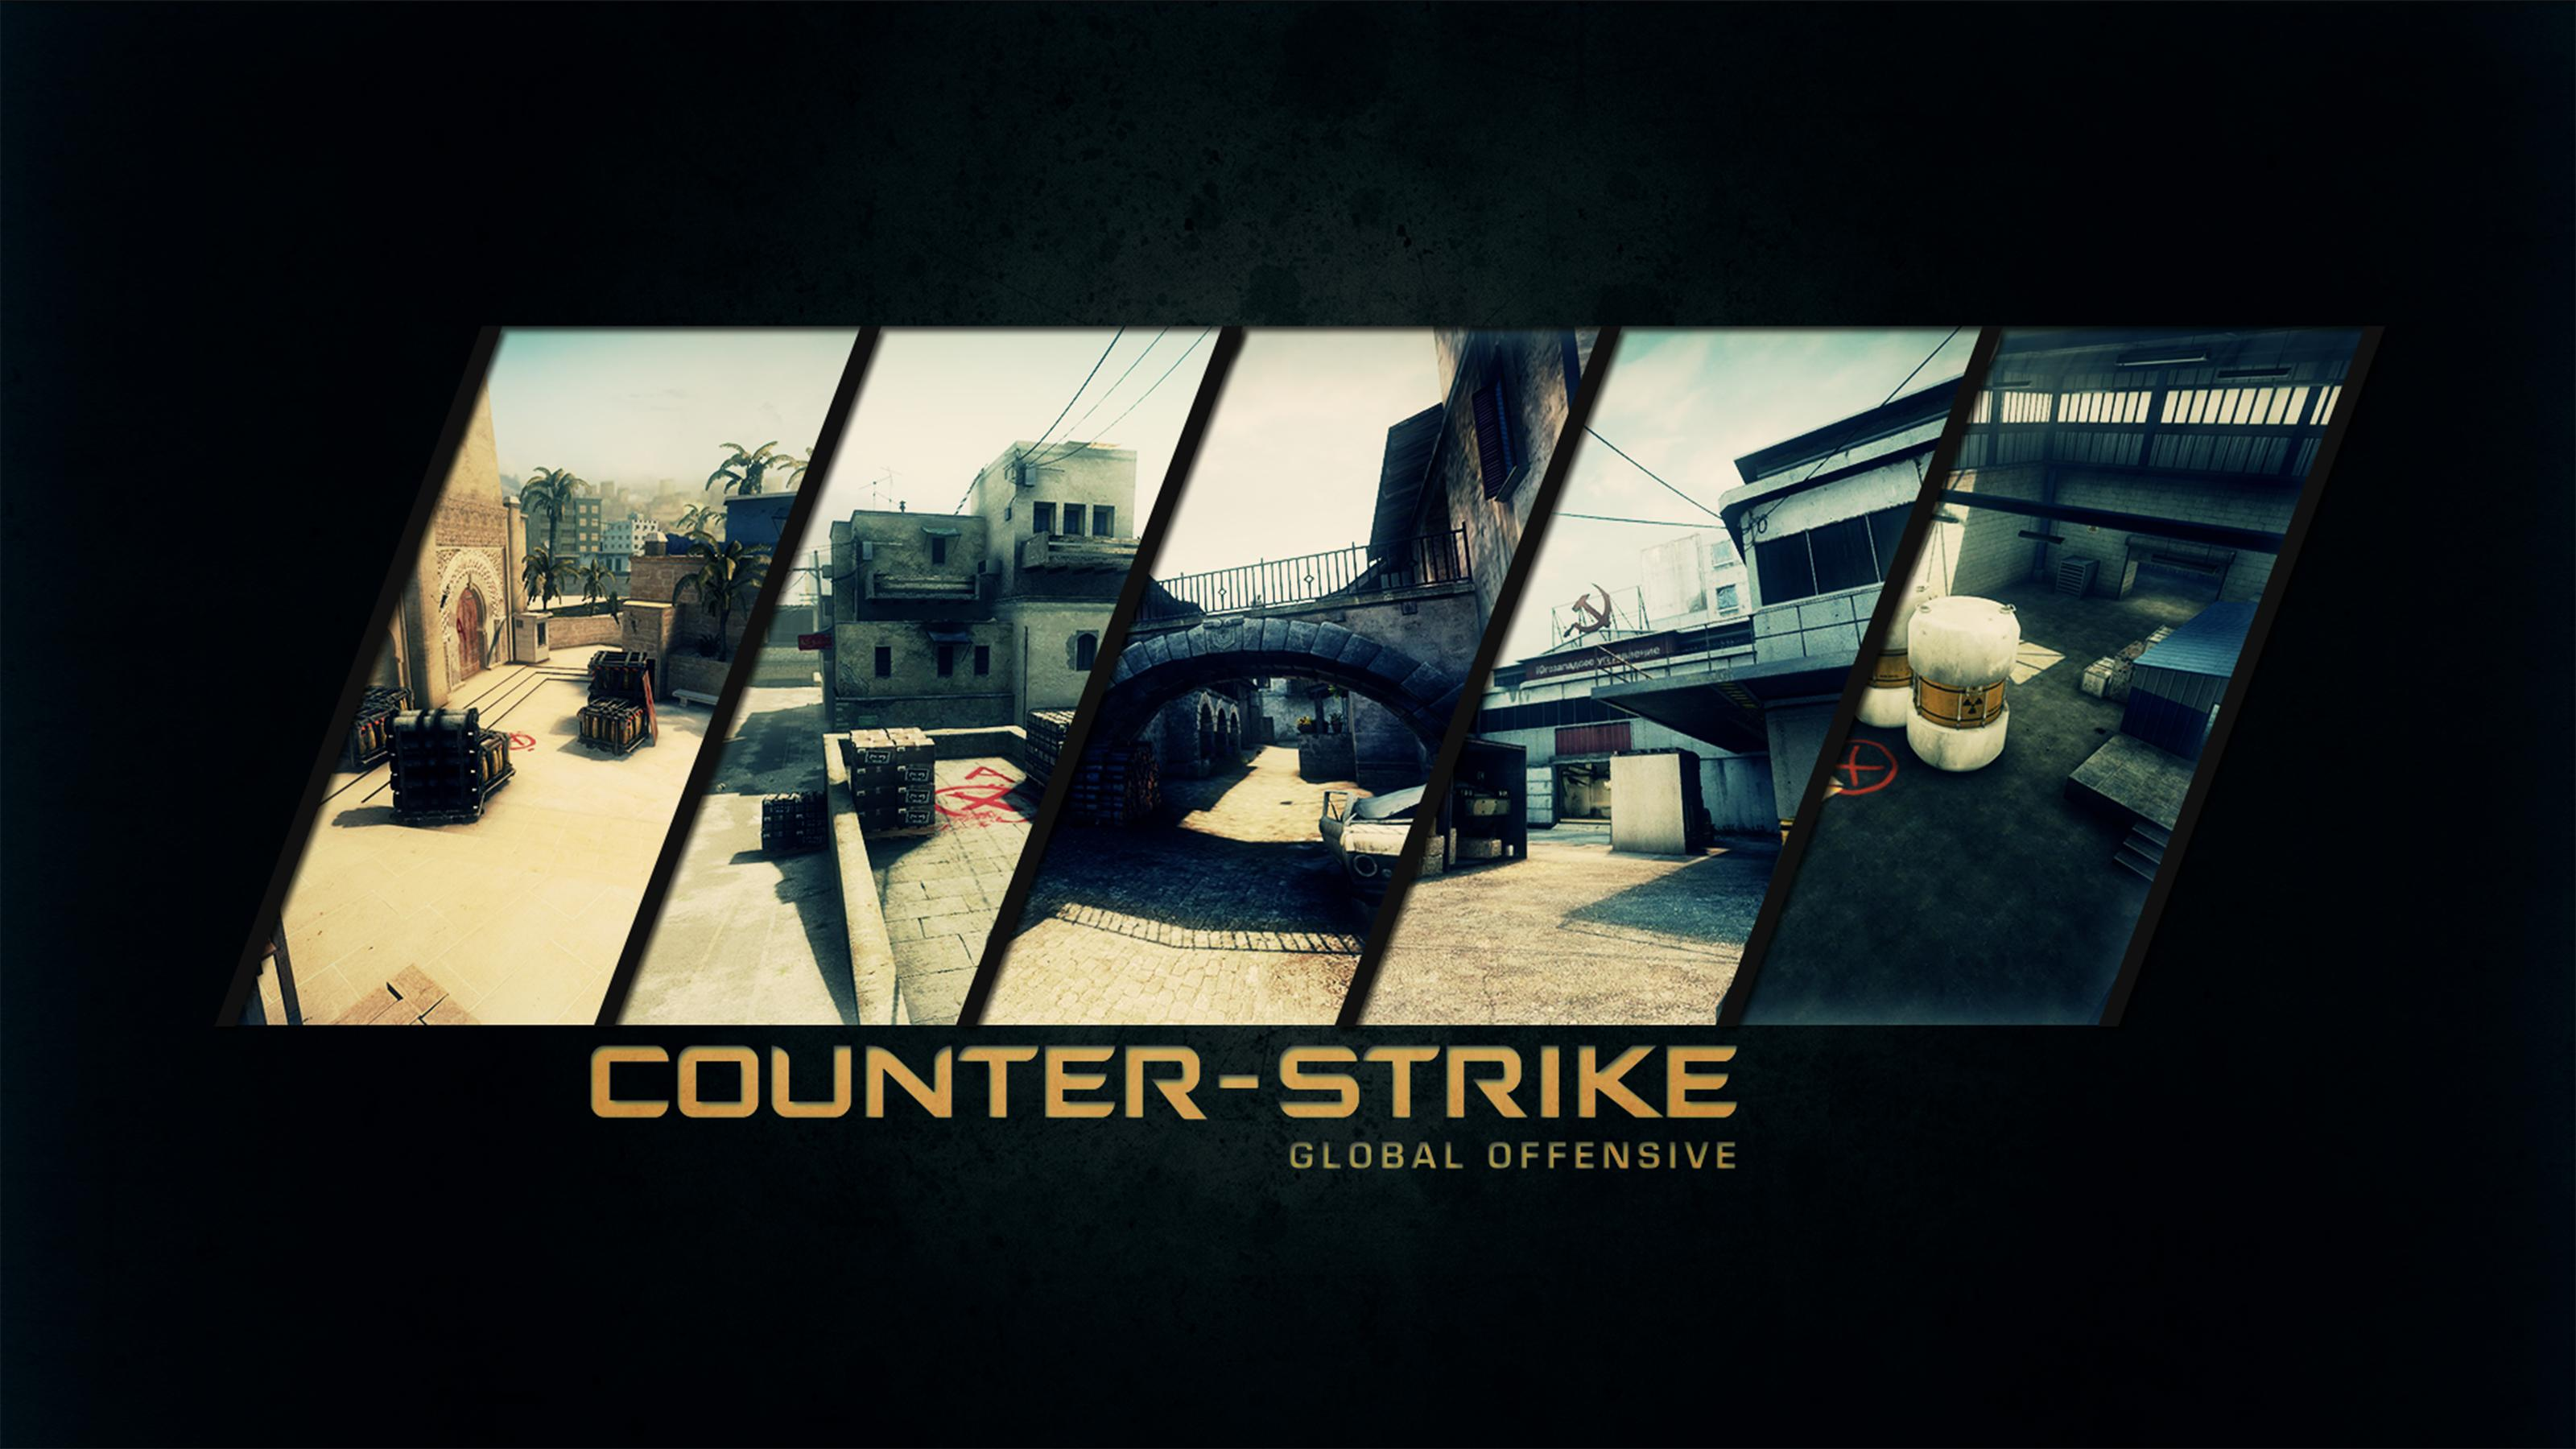 Counter Strike Global Offensive Sniper Wallpaper For Iphone Is Cool Wallpapers